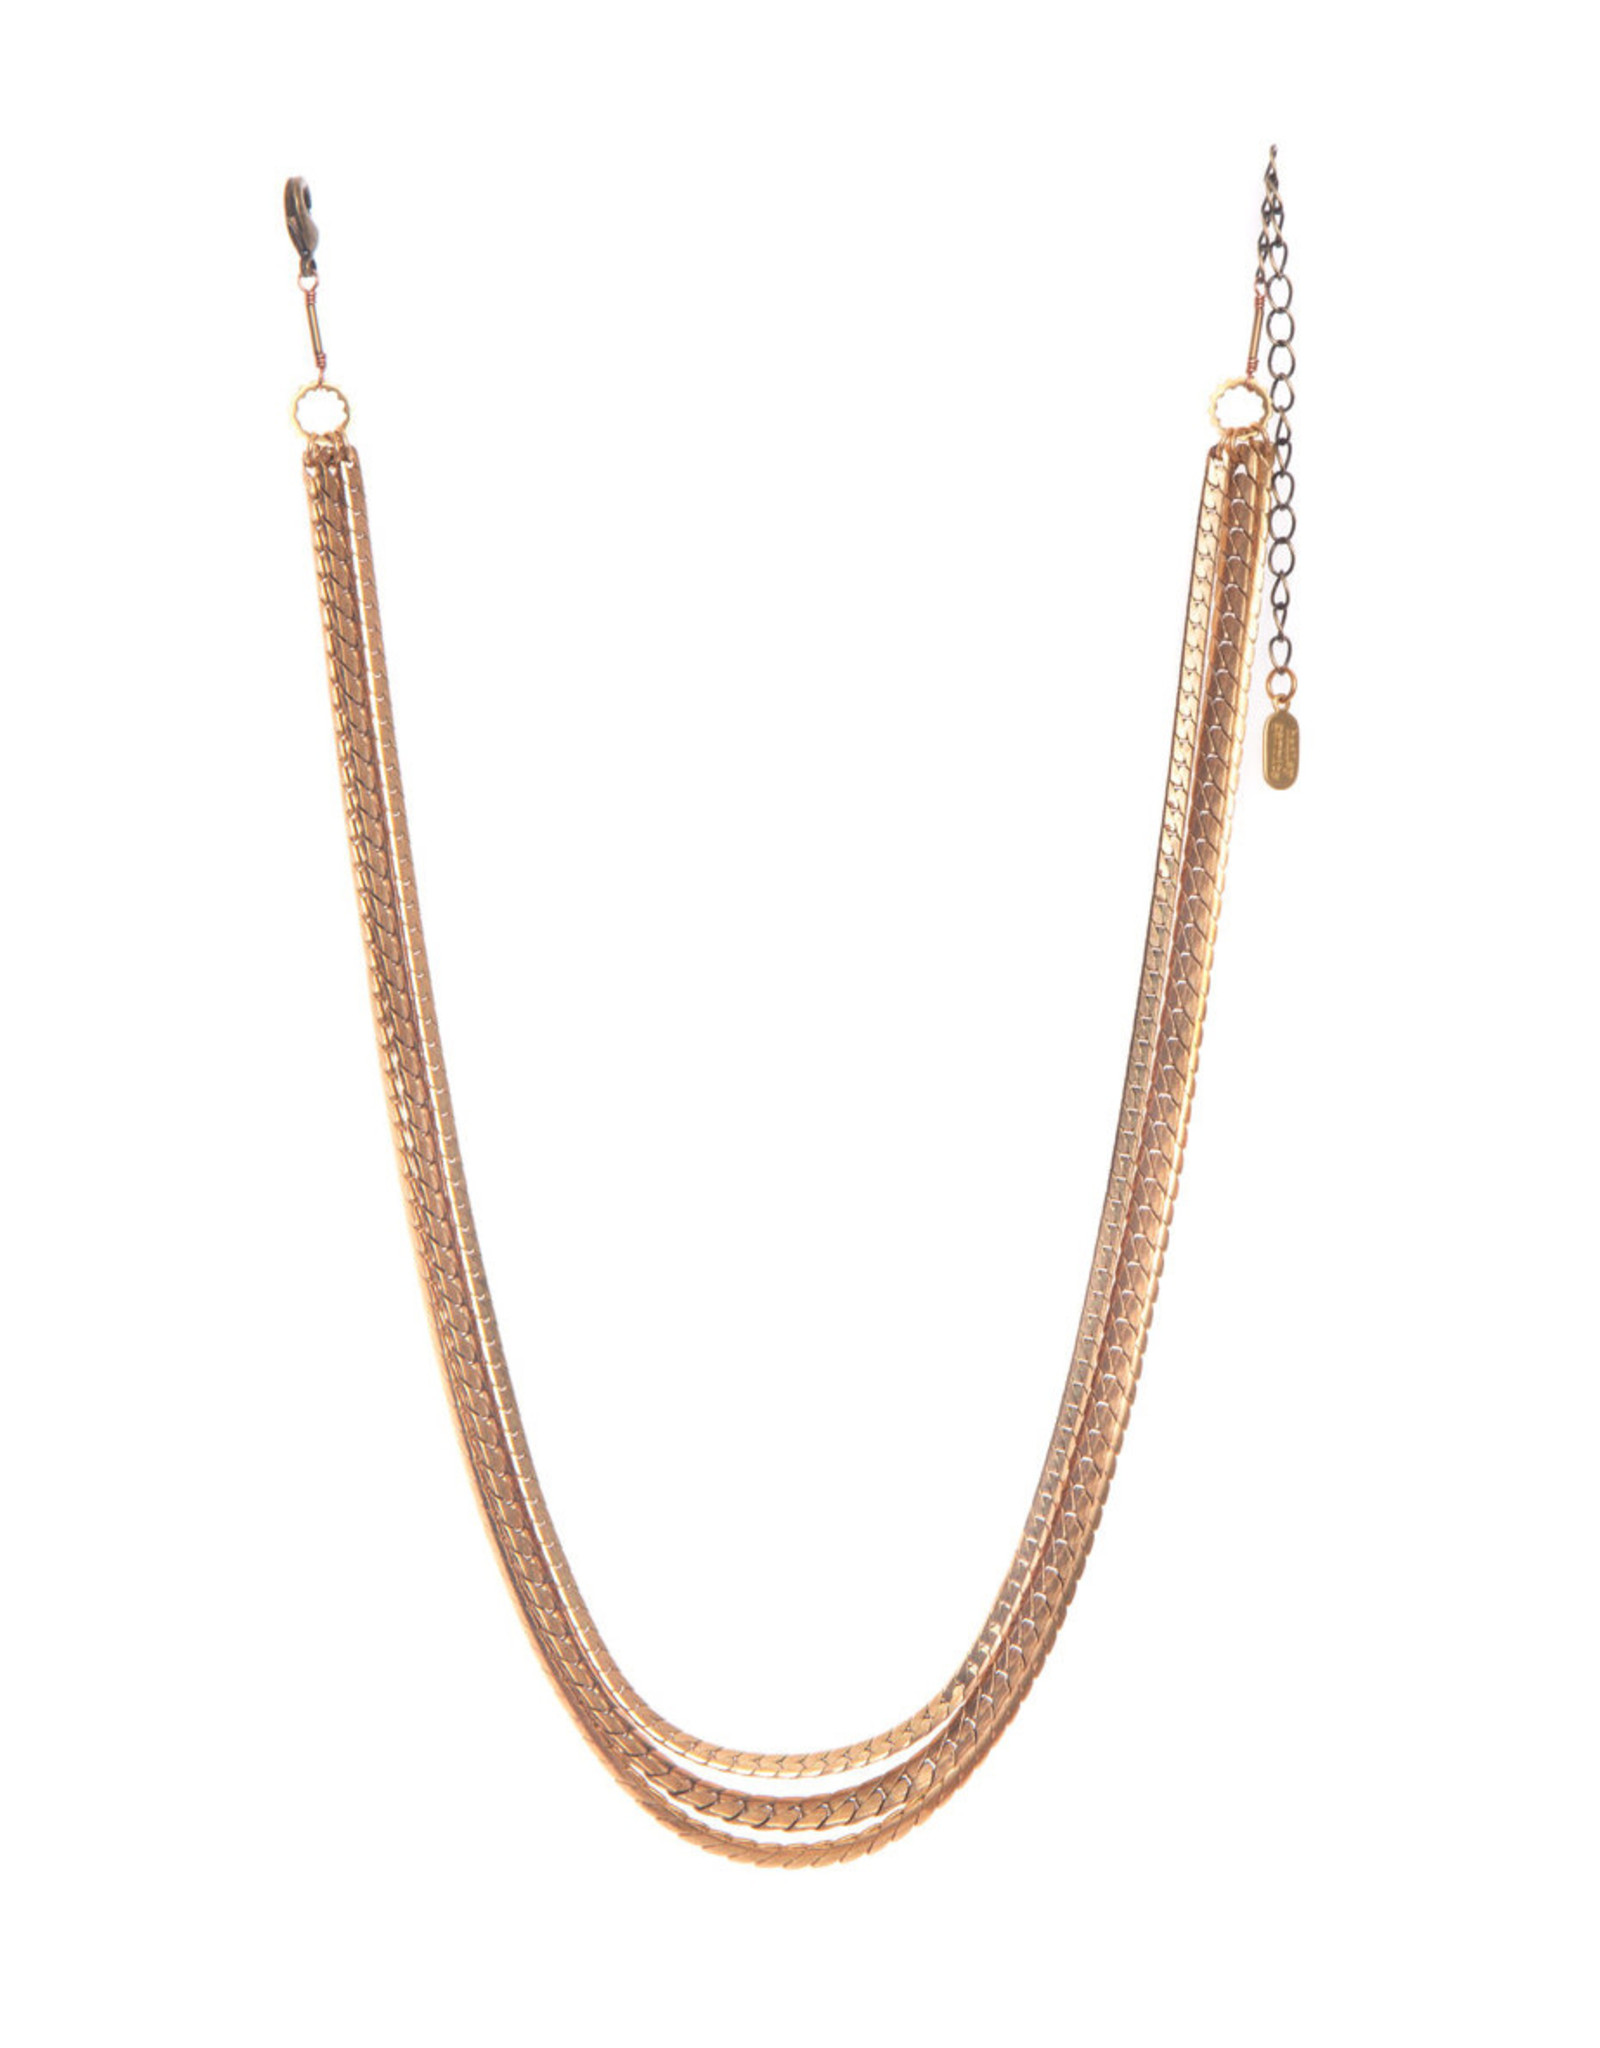 Hailey Gerrits Designs Large Mixed Chain Necklace